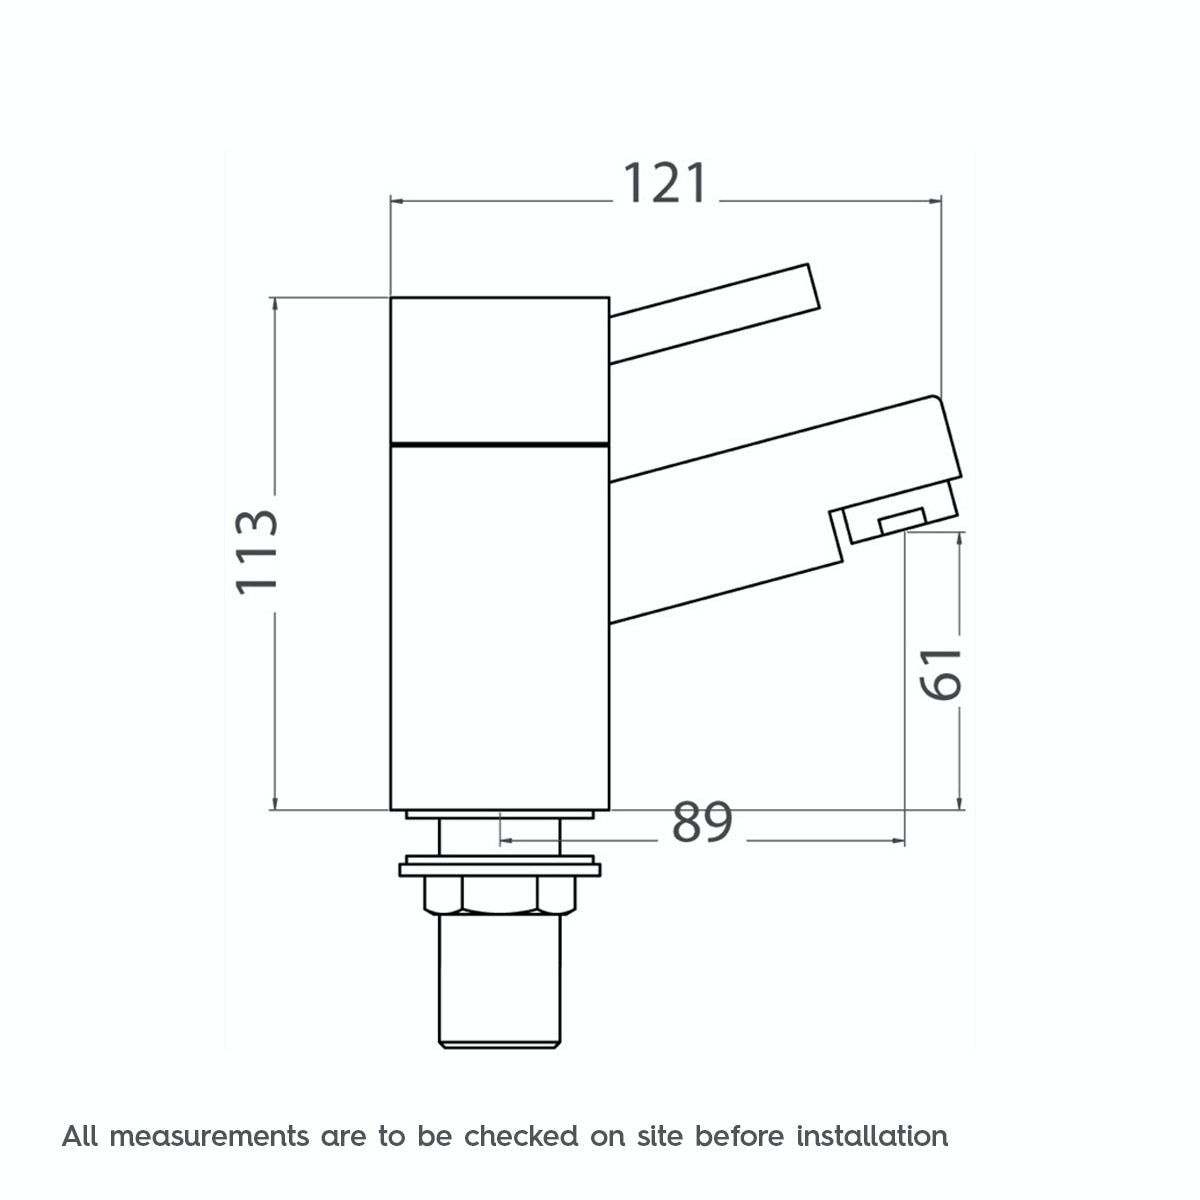 Dimensions for Orchard Matrix bath pillar taps